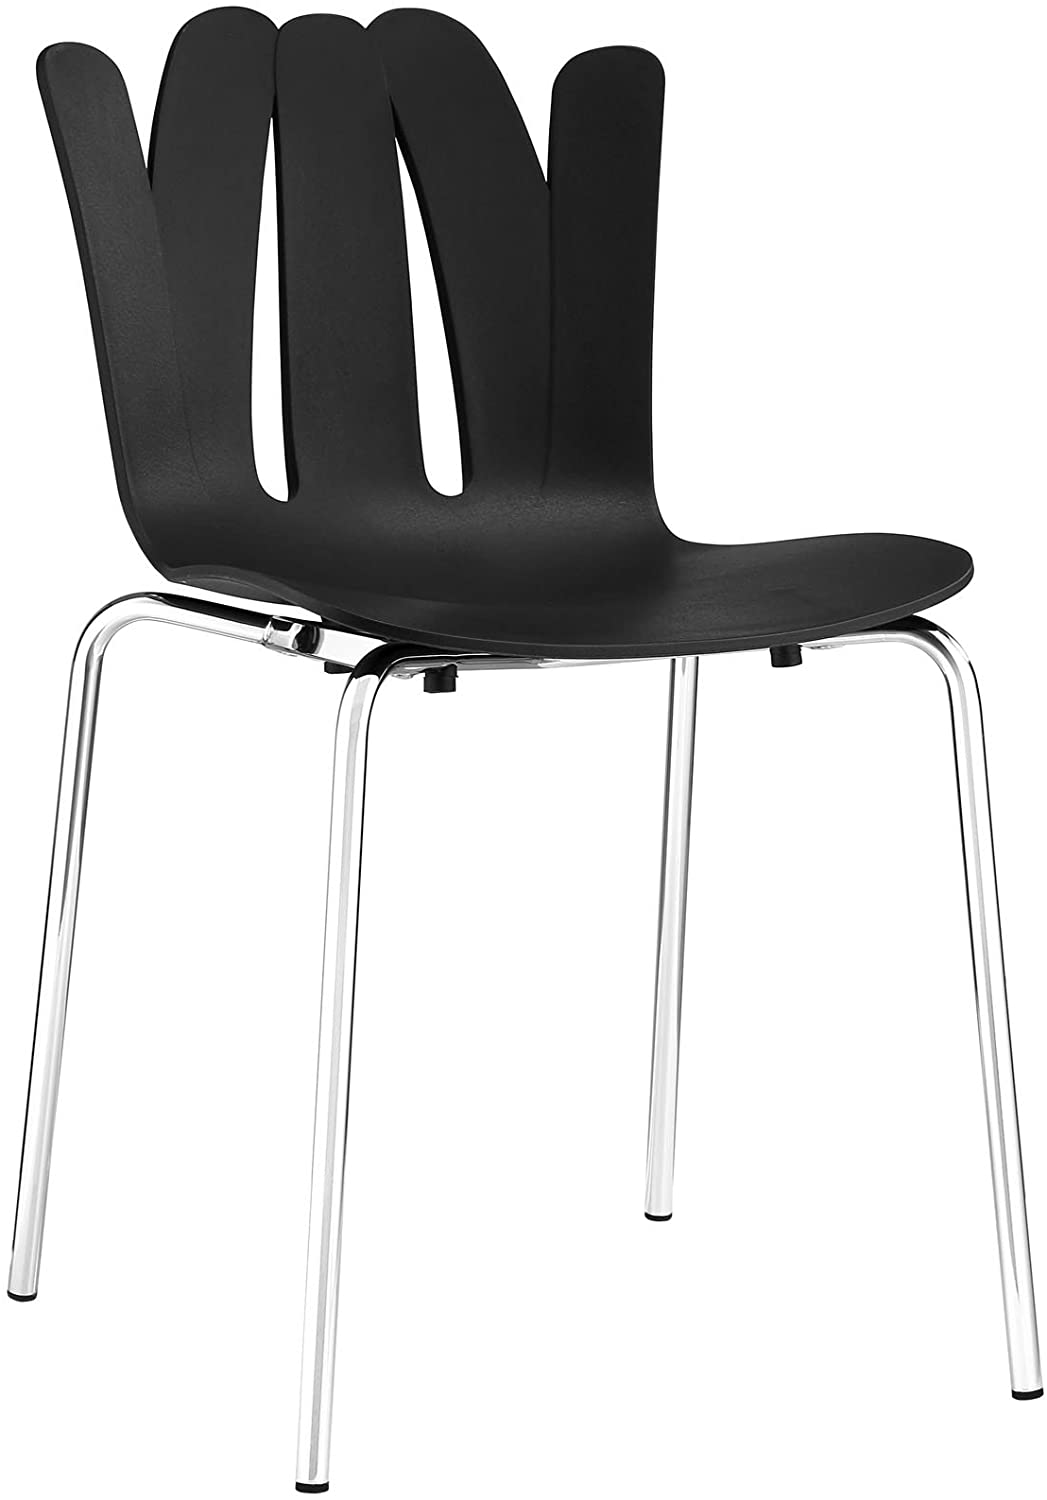 Modway Flare Dining Side Chair, Black